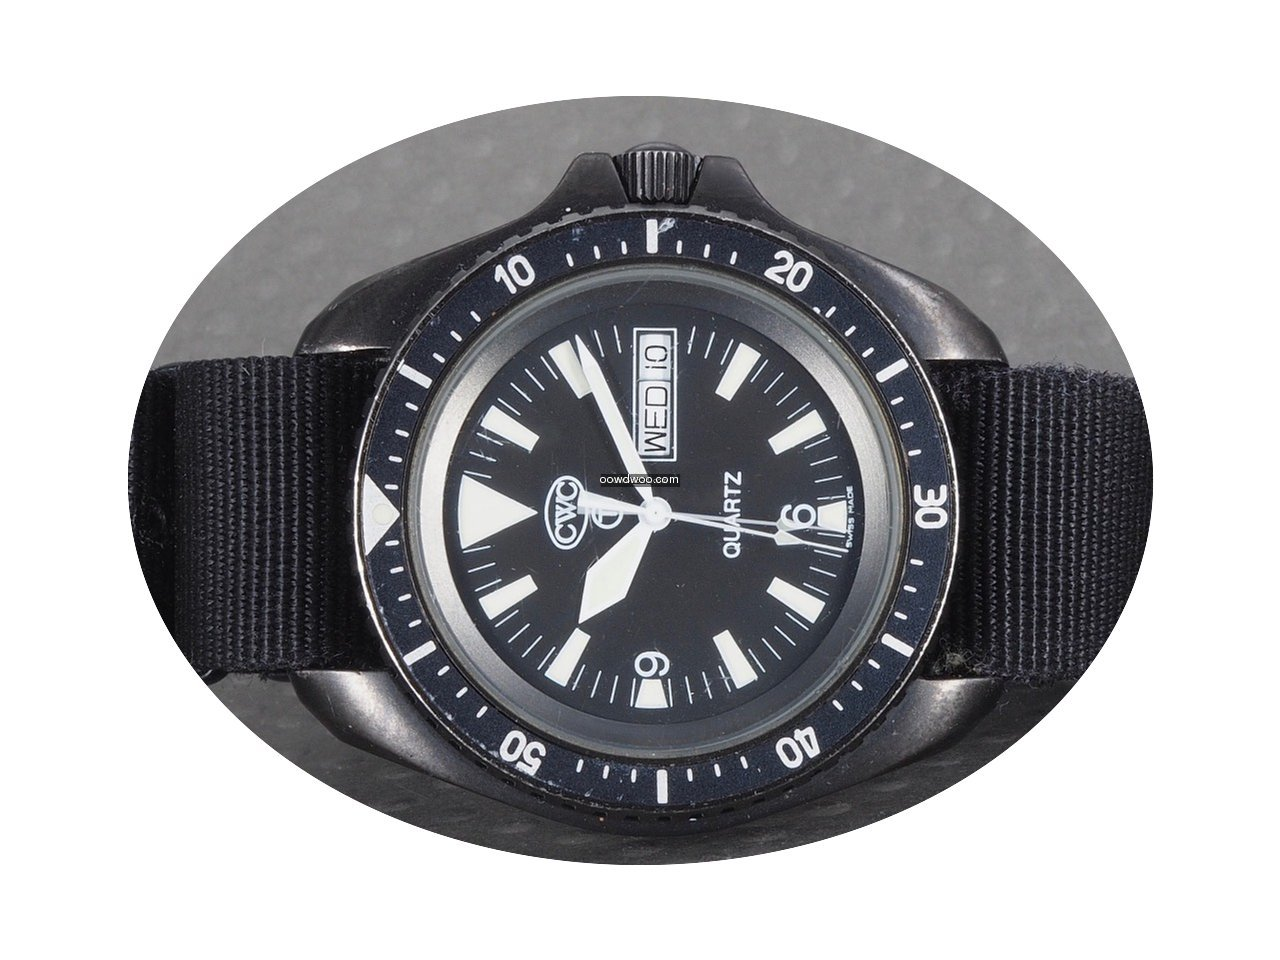 CWC SBS Diver 2000 Issue...